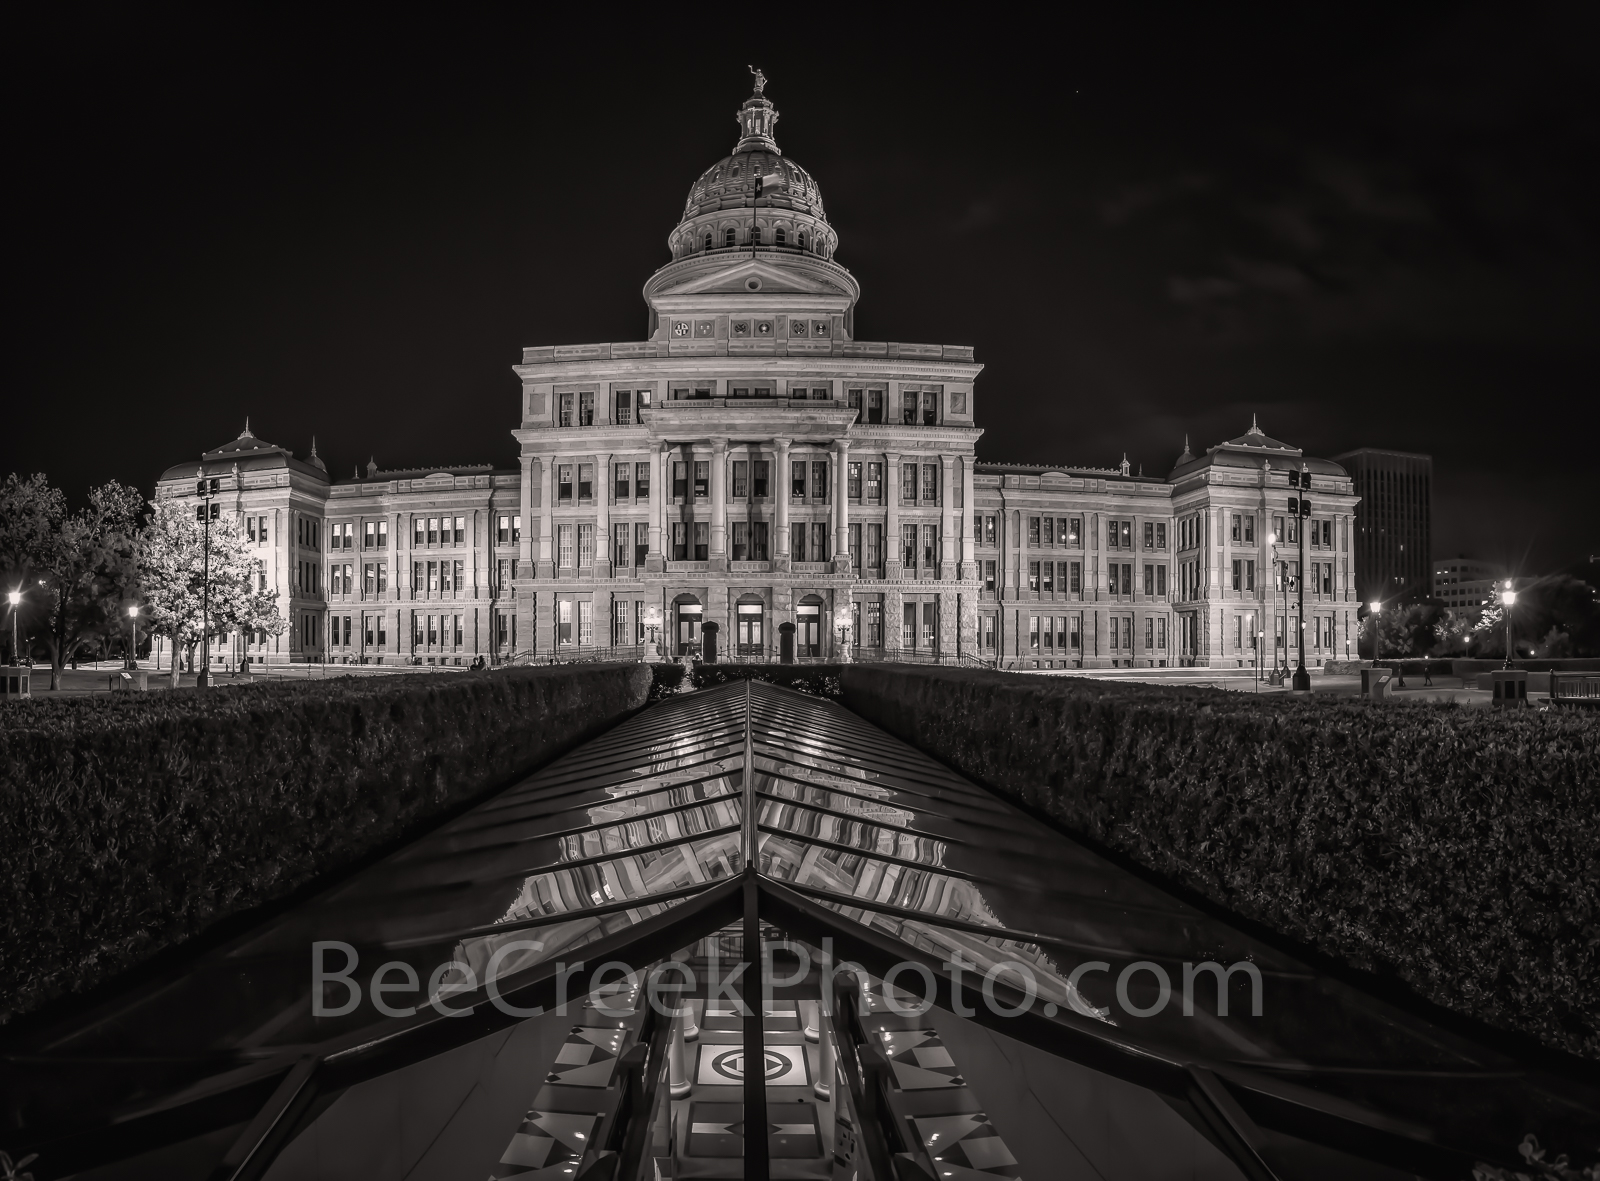 Austin, Texas Capitol, night, black and white, bw, vertical panorama, pano, downtown, city, State Capitol building, Texas State Capitol, state Capital, Capitol of Texas, panorama, pano, vertcal, touri, photo